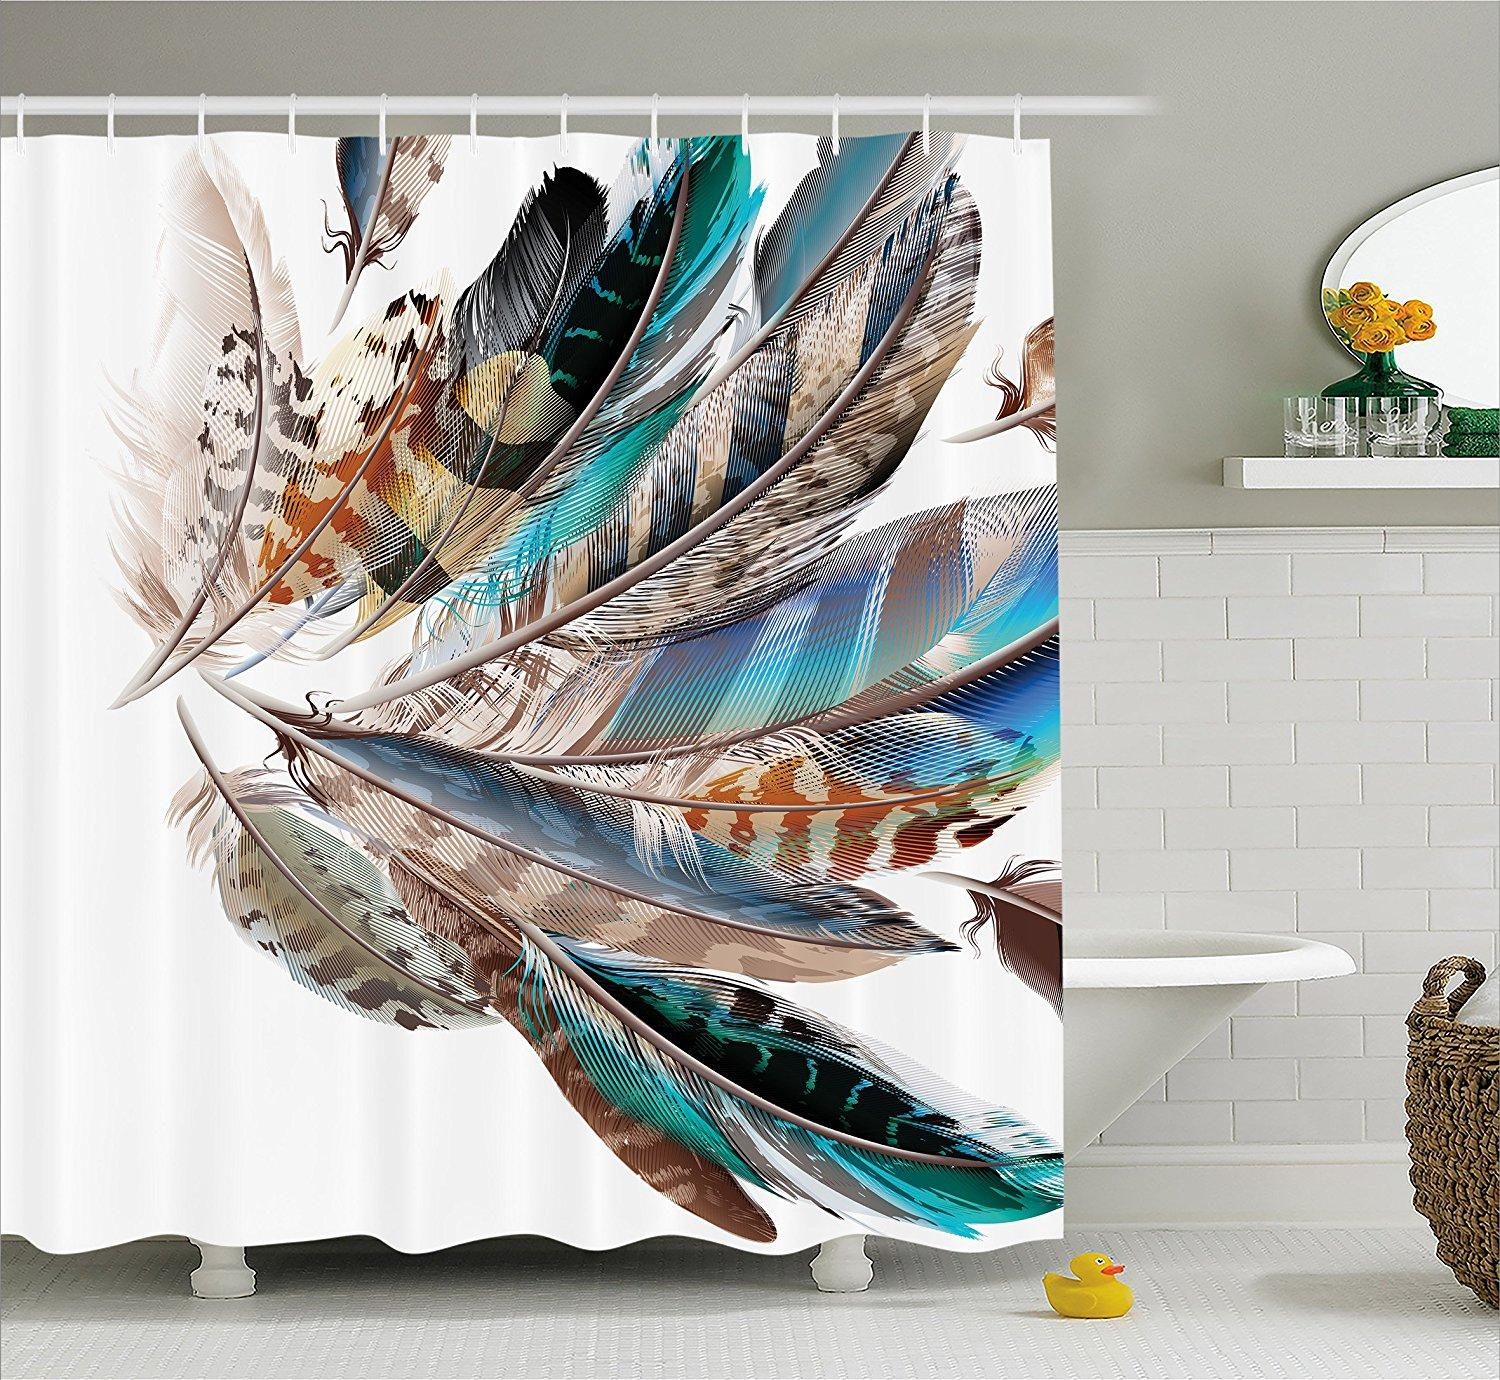 2018 Memory Home Feather Shower Curtain Vaned Types Flight Feathers Animal Print Waterproof Fabric Bathroom Decor Set With Hooks From Dtanya